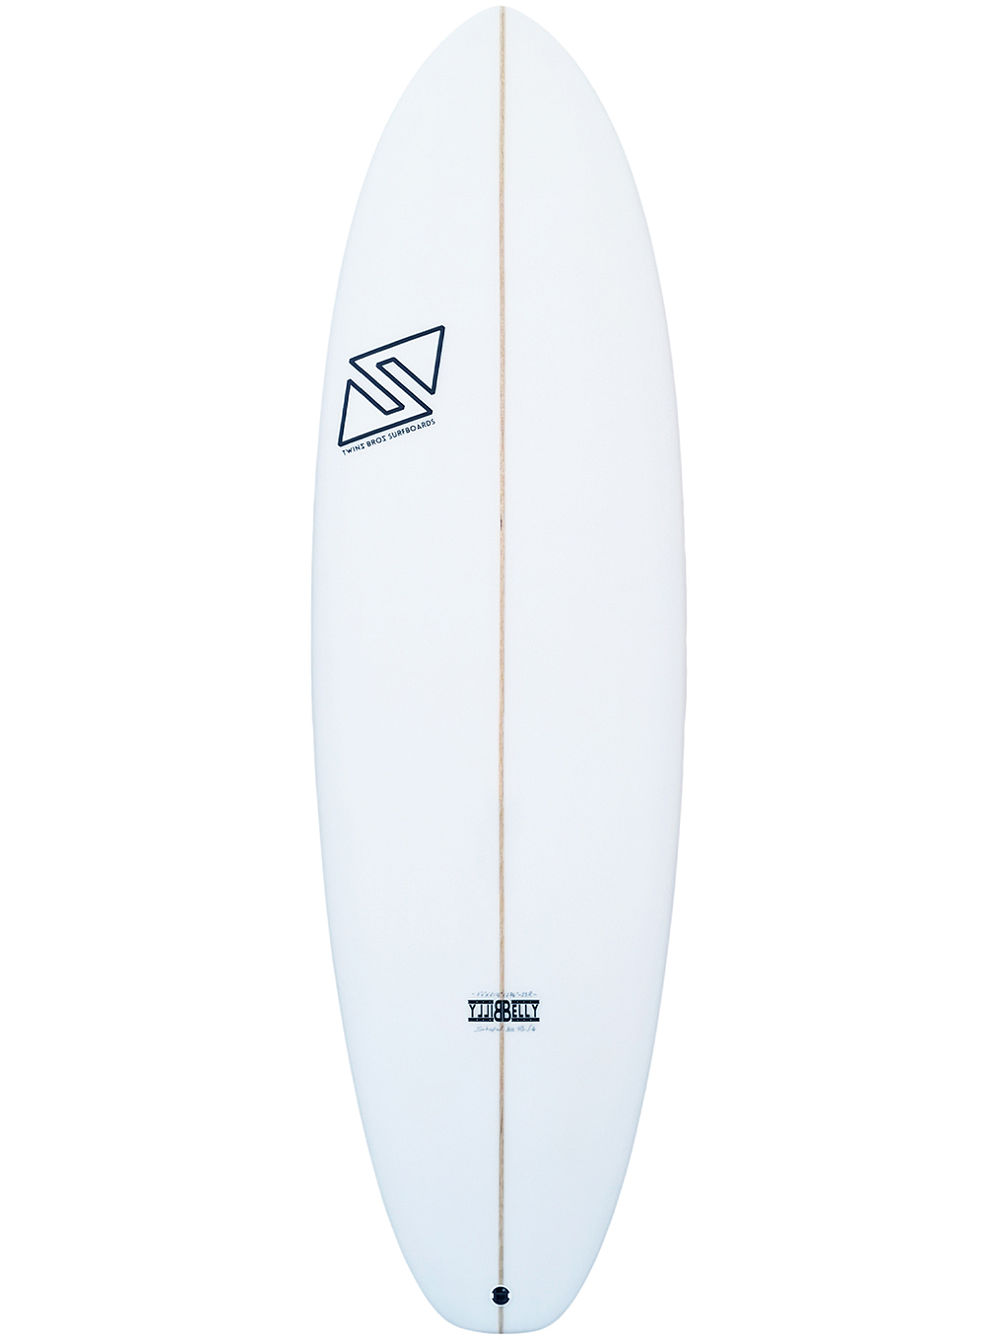 Billy Belly FCS2 5'6 Prancha de Surf